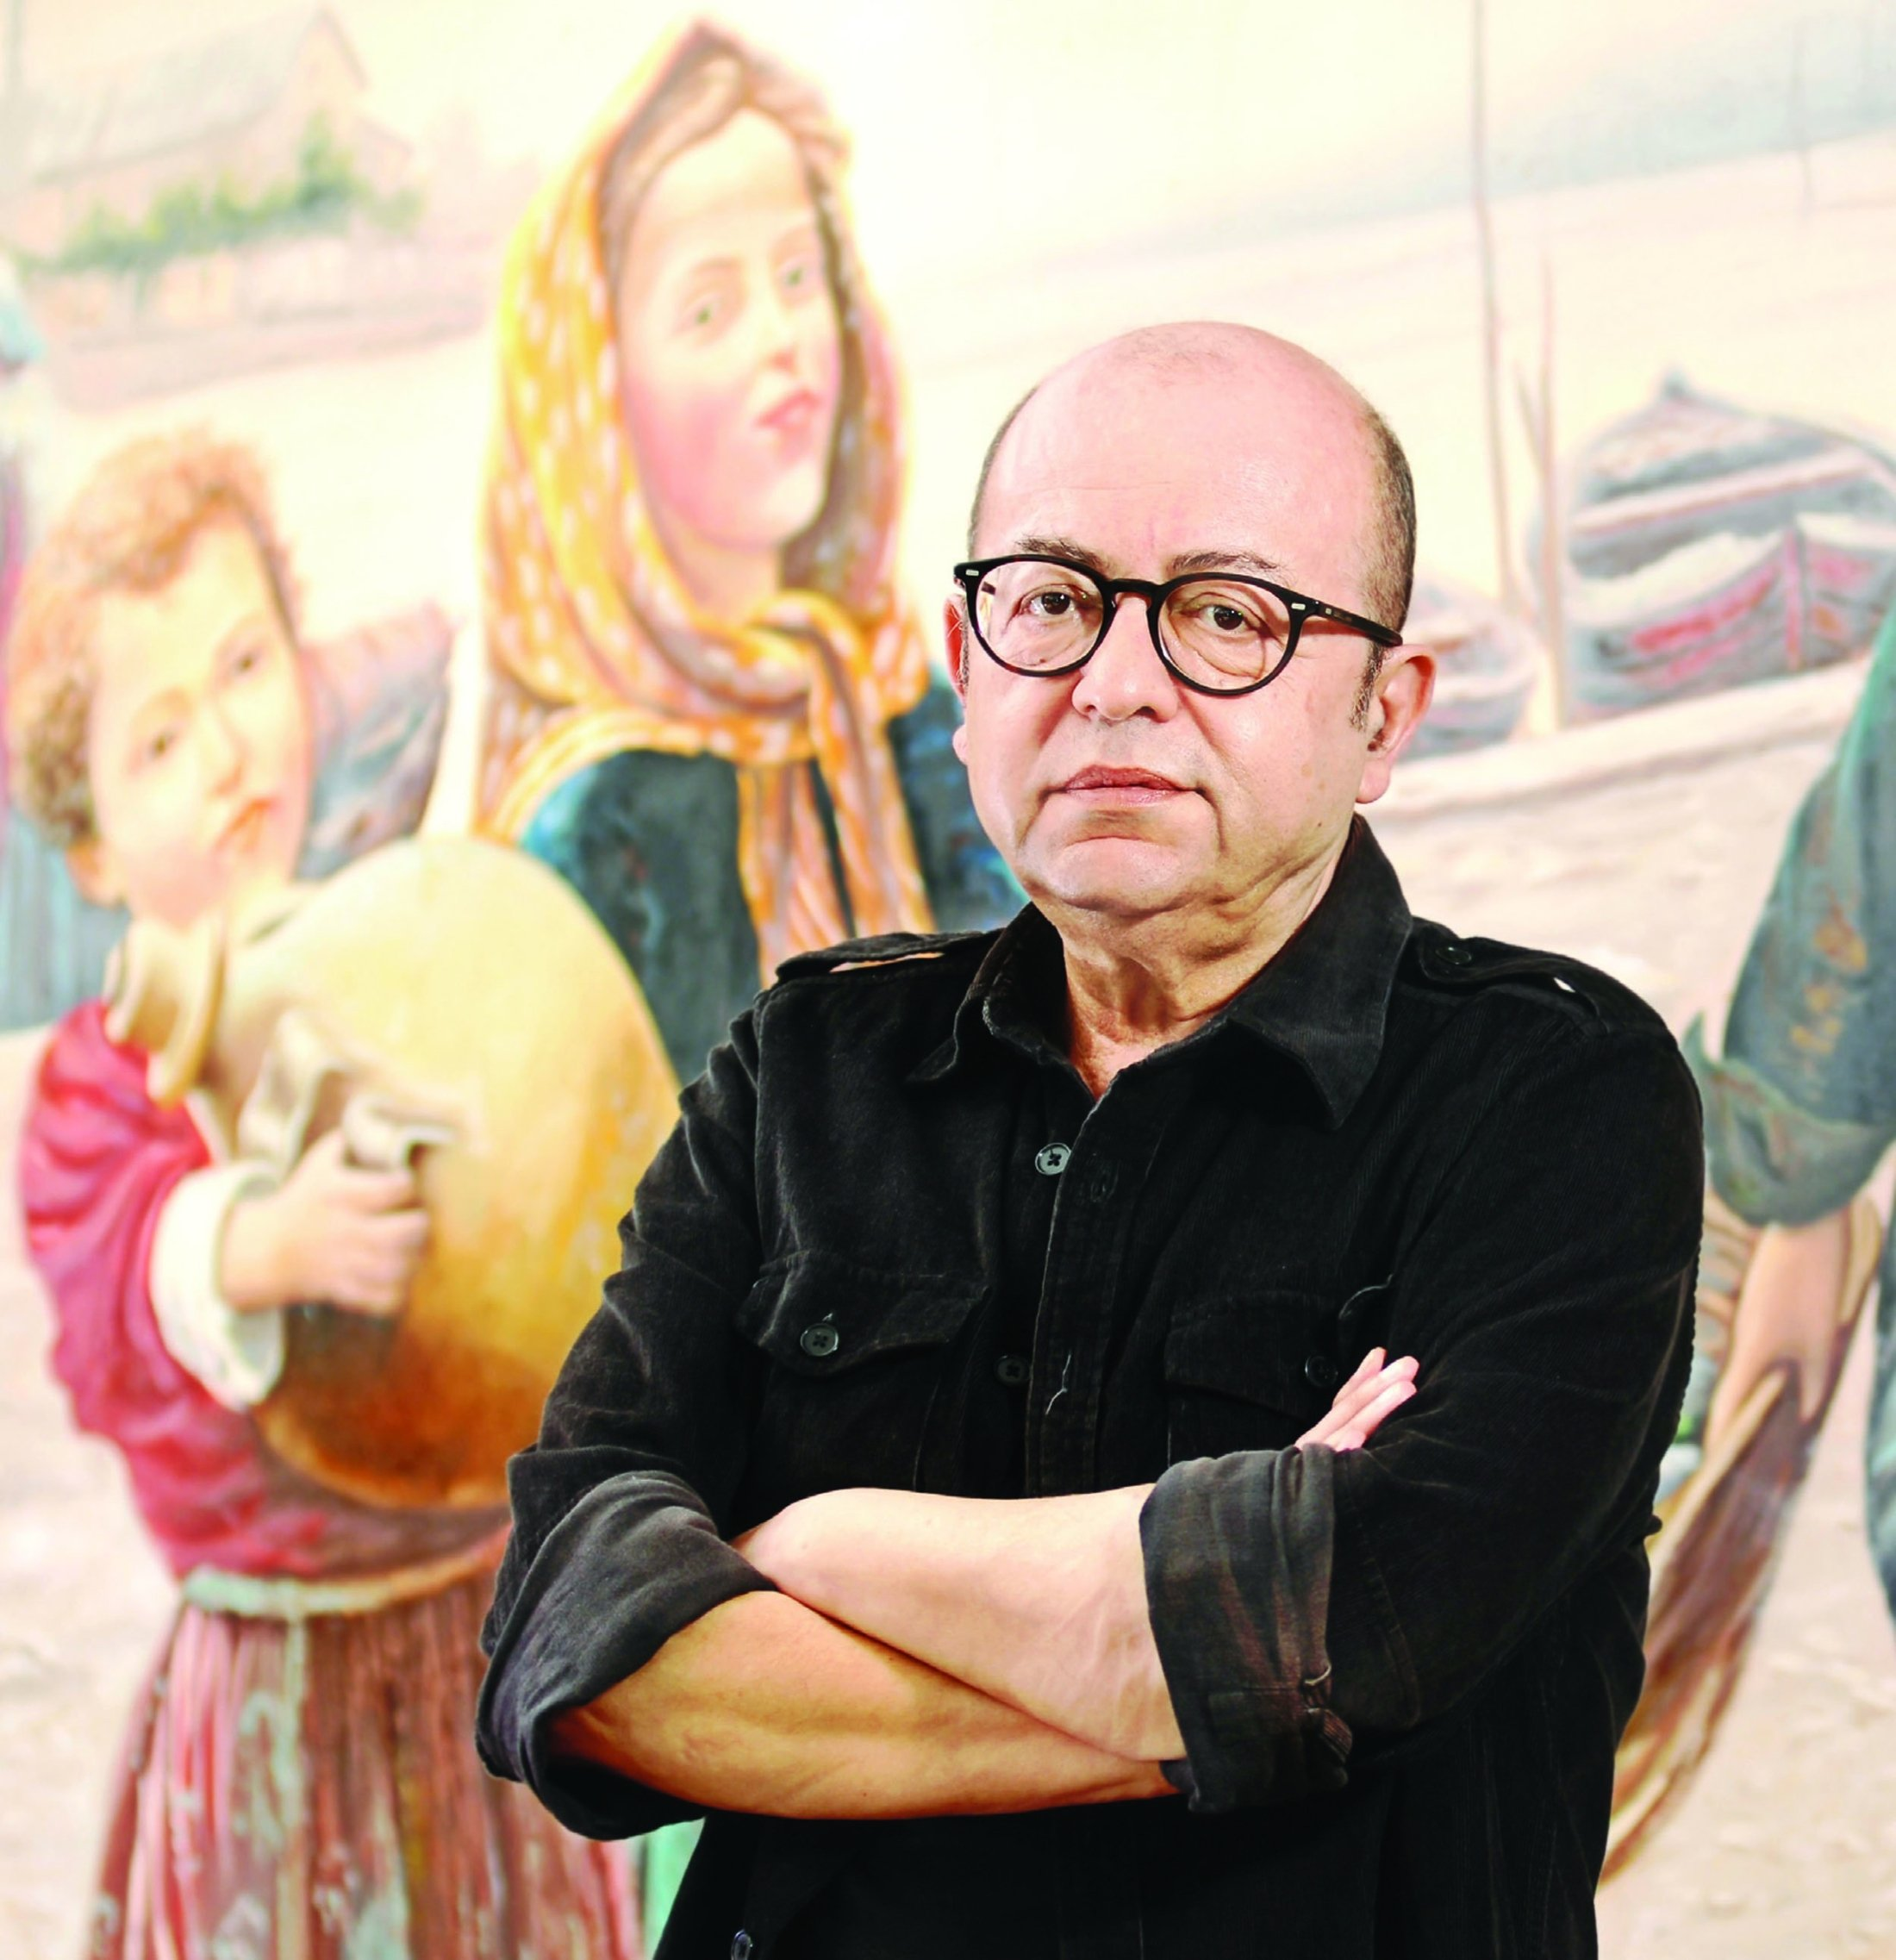 Author Selim Ileri poses for a photo with a mural in the background, Istanbul, Turkey, Aug. 23, 2013. (Archive Photo)